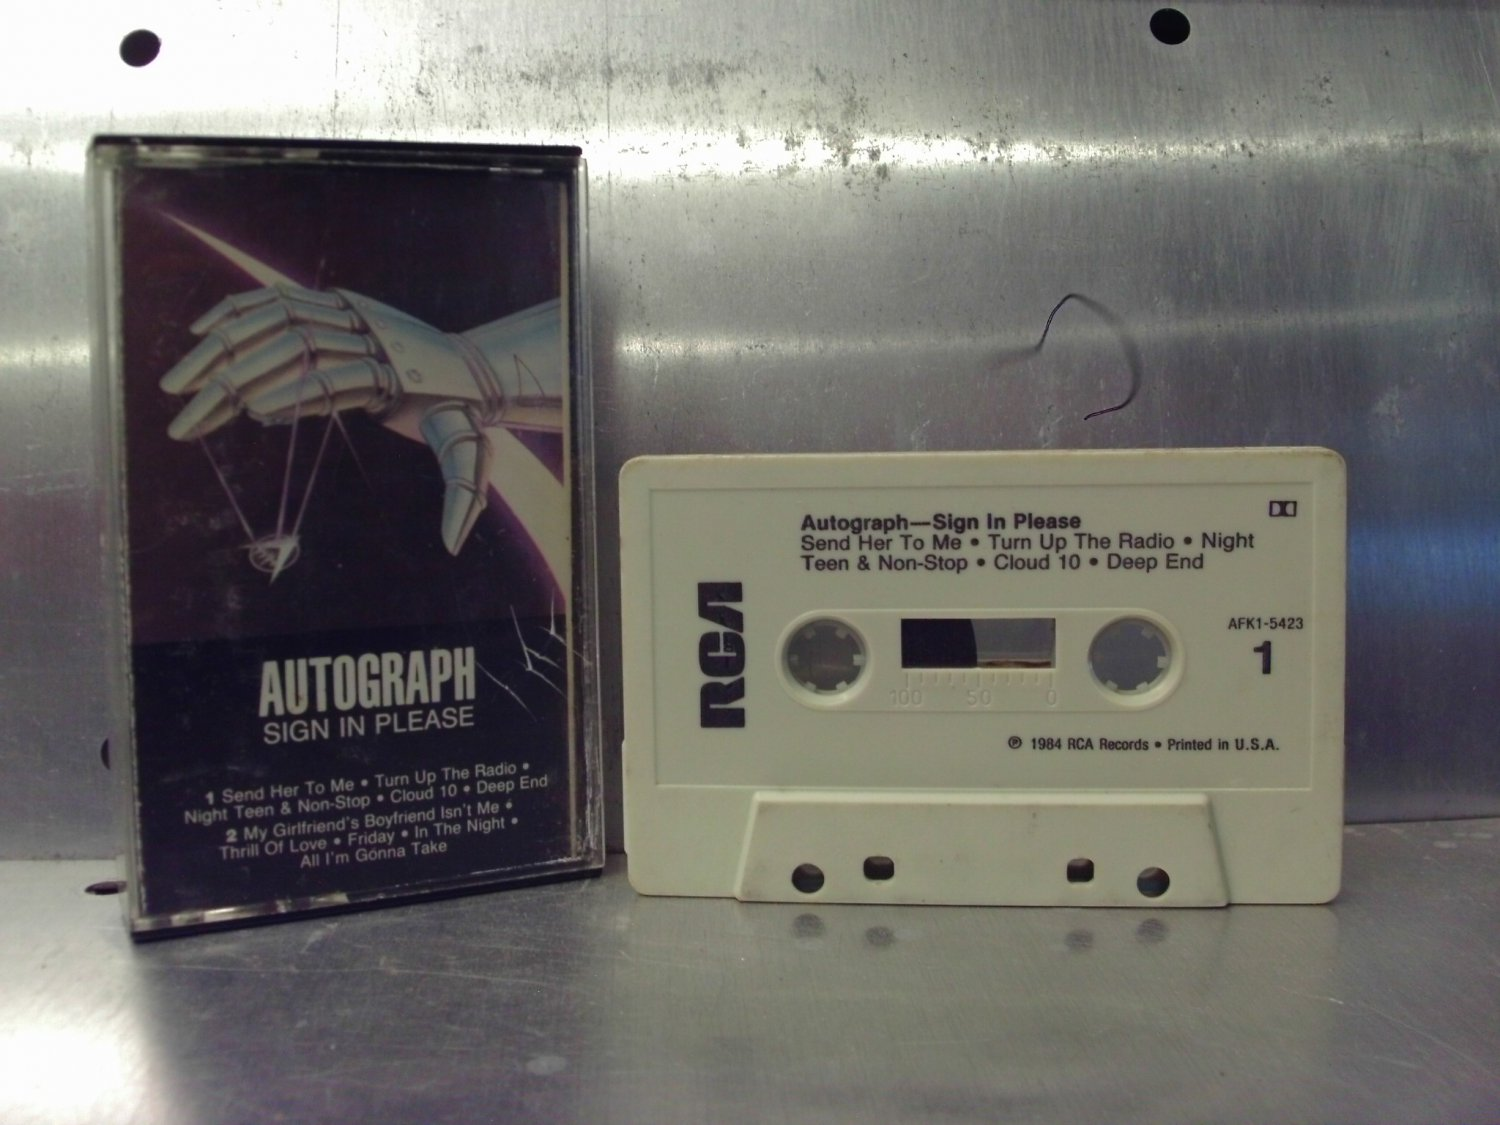 Autograph - Sign In Please (Re-release) Cassette Tape A1-17